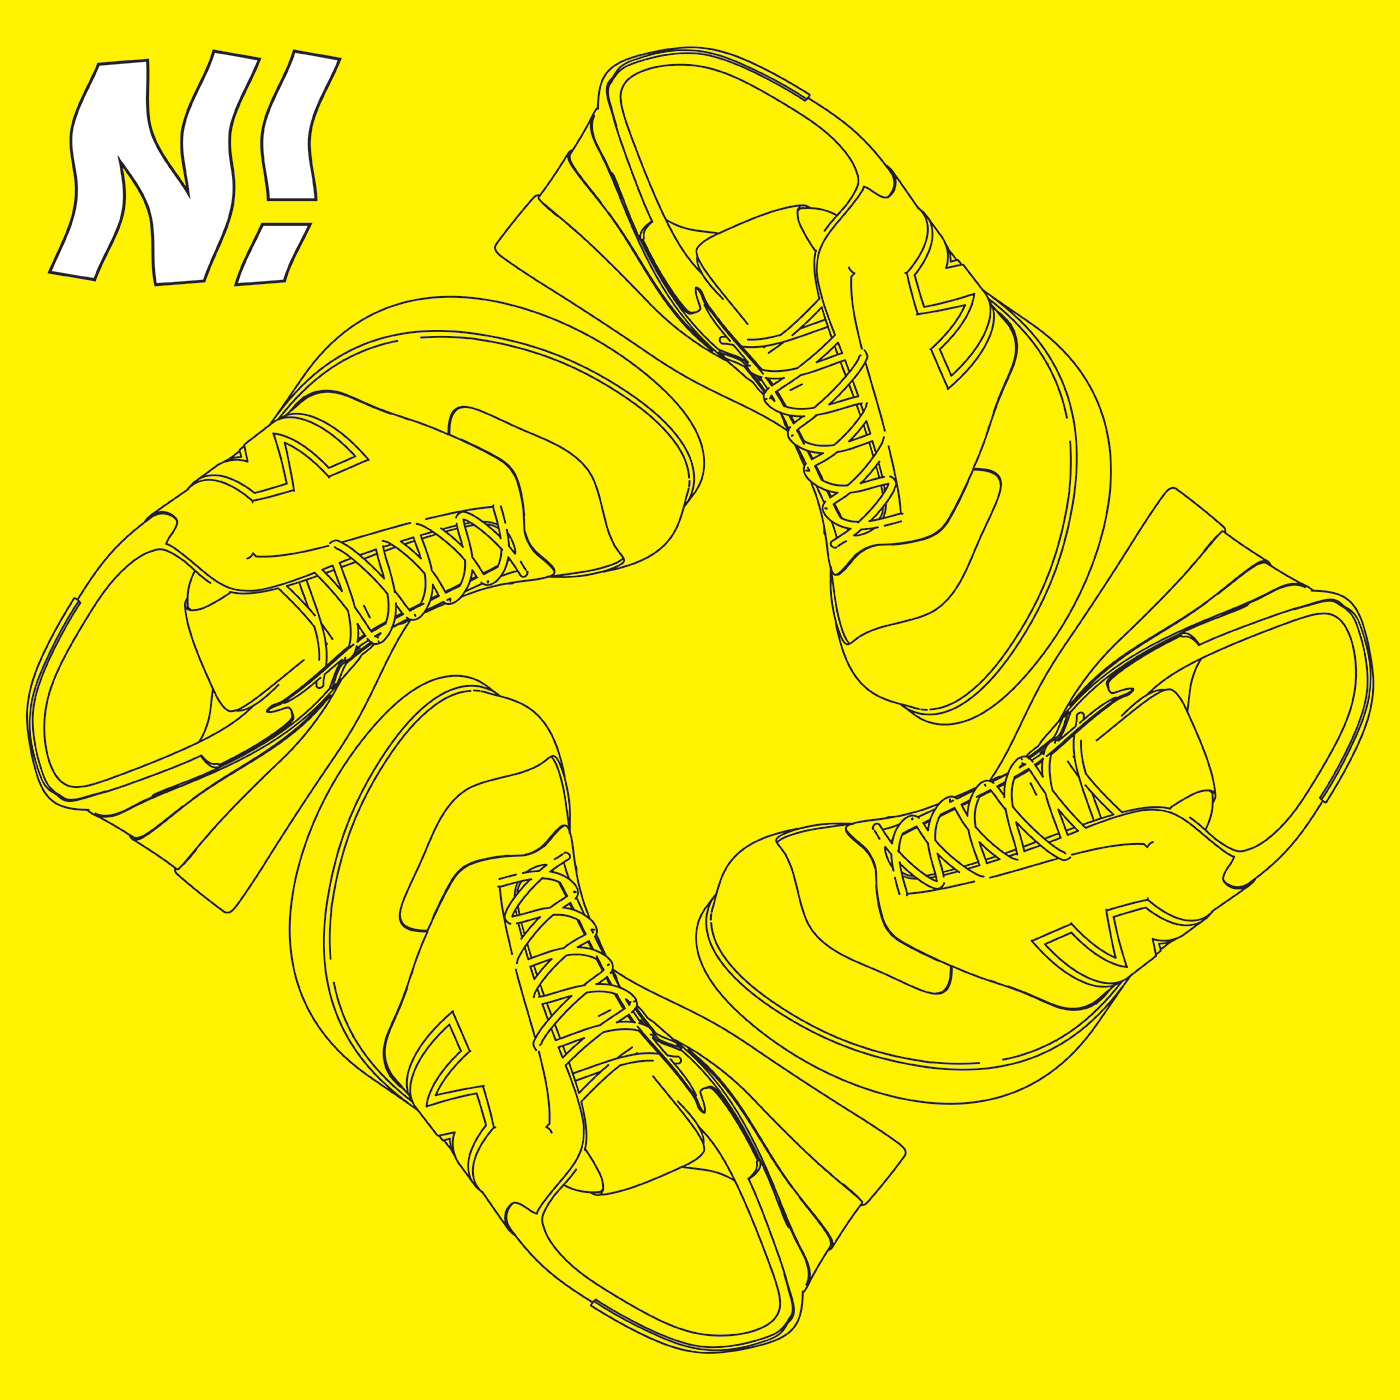 Review of 'Rubber Sole' by Neu Balance, the album is now out on the 1080p